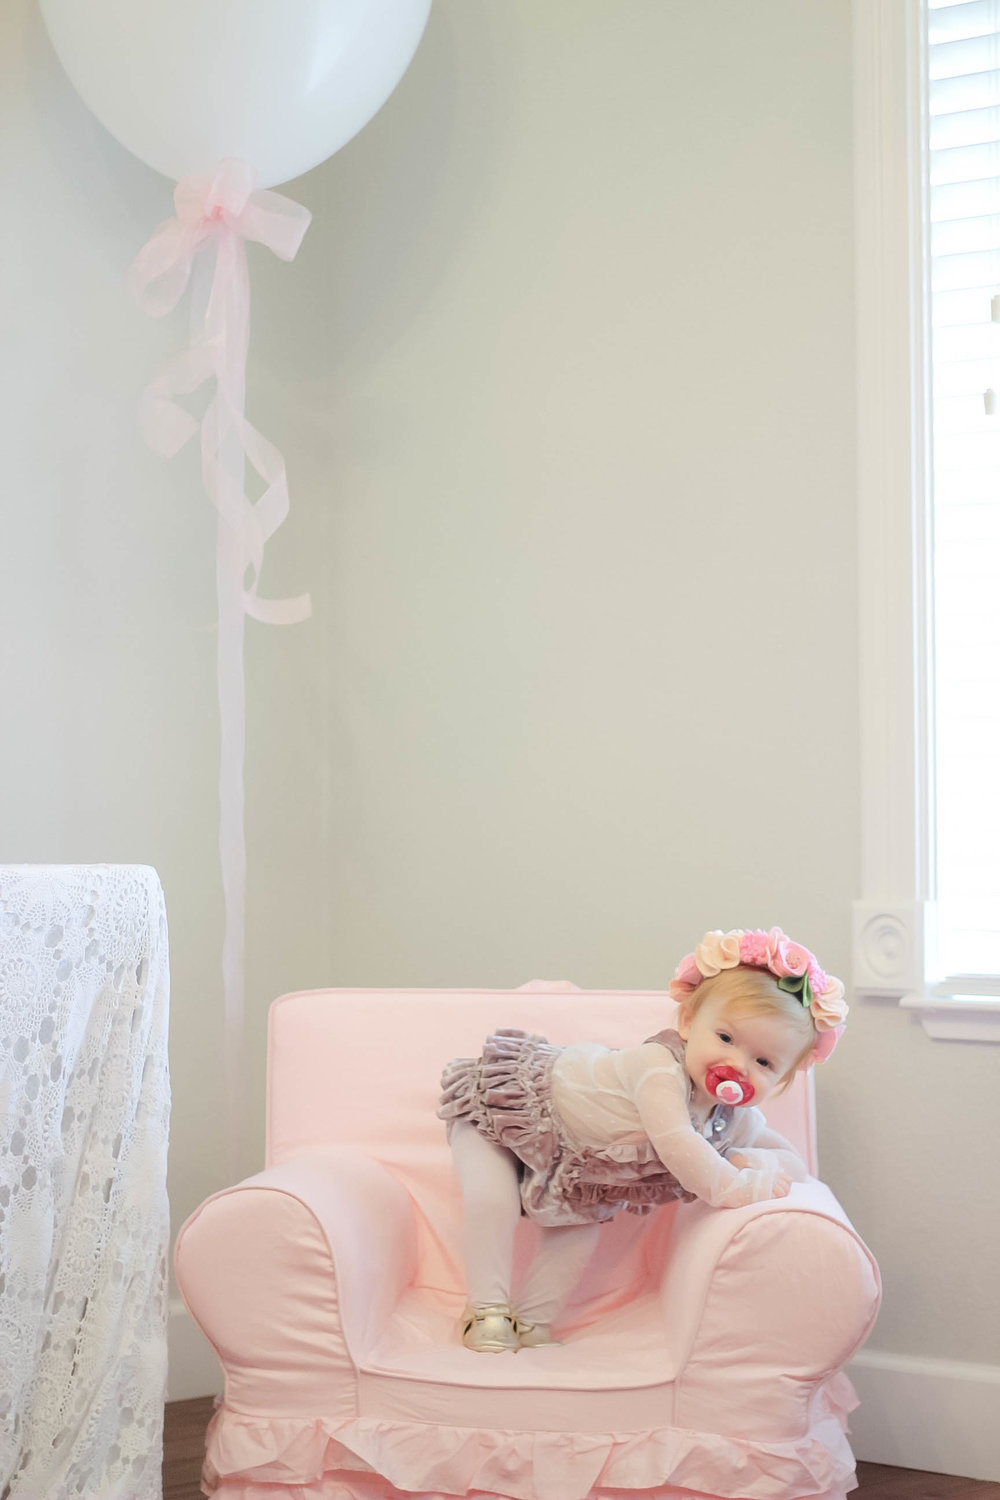 Anywhere Chair by  Pottery Barn Kids  and Isla's Outfit by Paush Mini from  Shop Sweet Threads